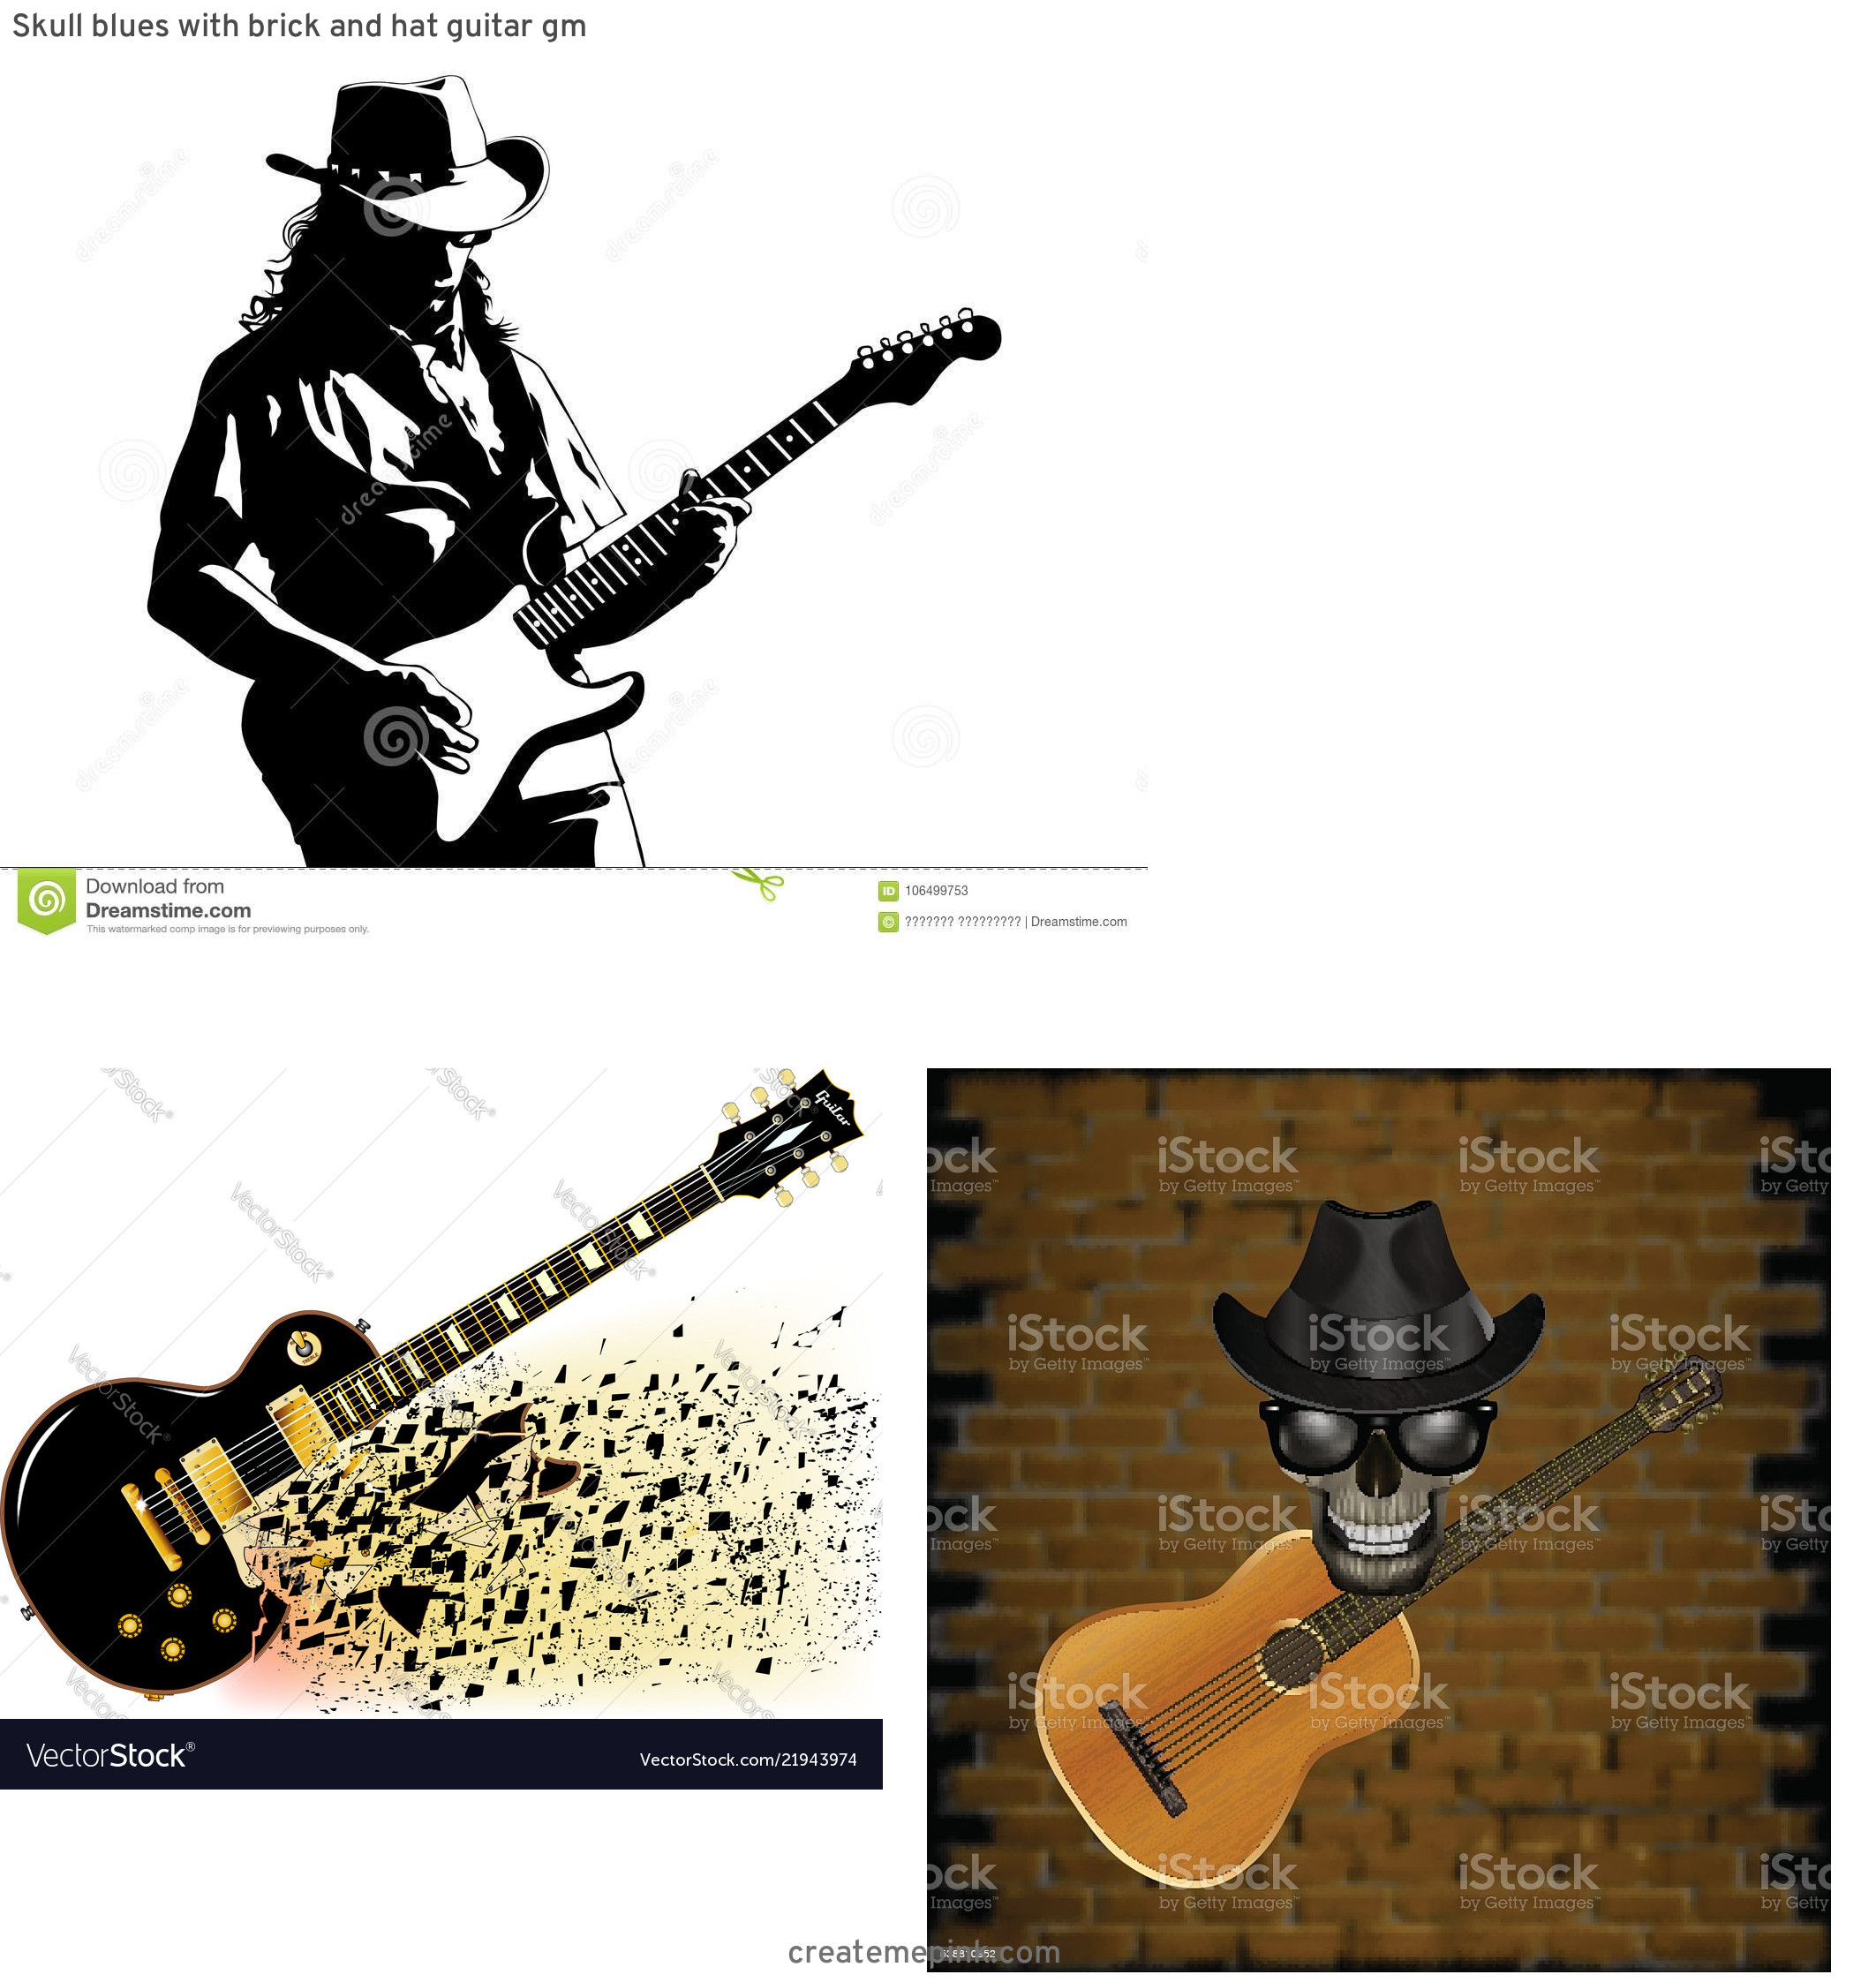 Blues Guitarist Vector Art: Skull Blues With Brick And Hat Guitar Gm